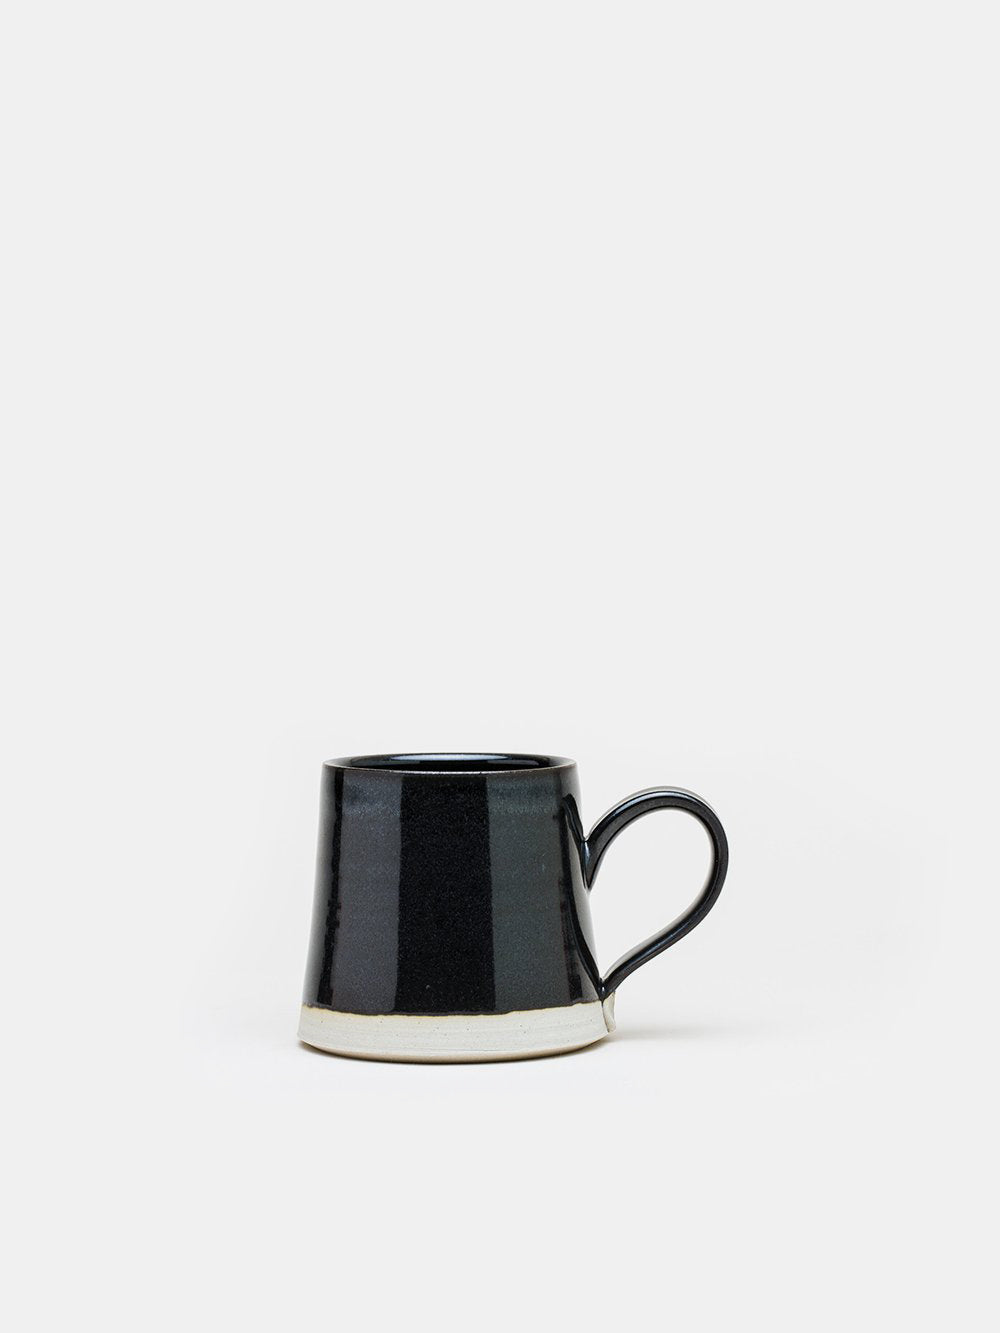 wrf small mug in black